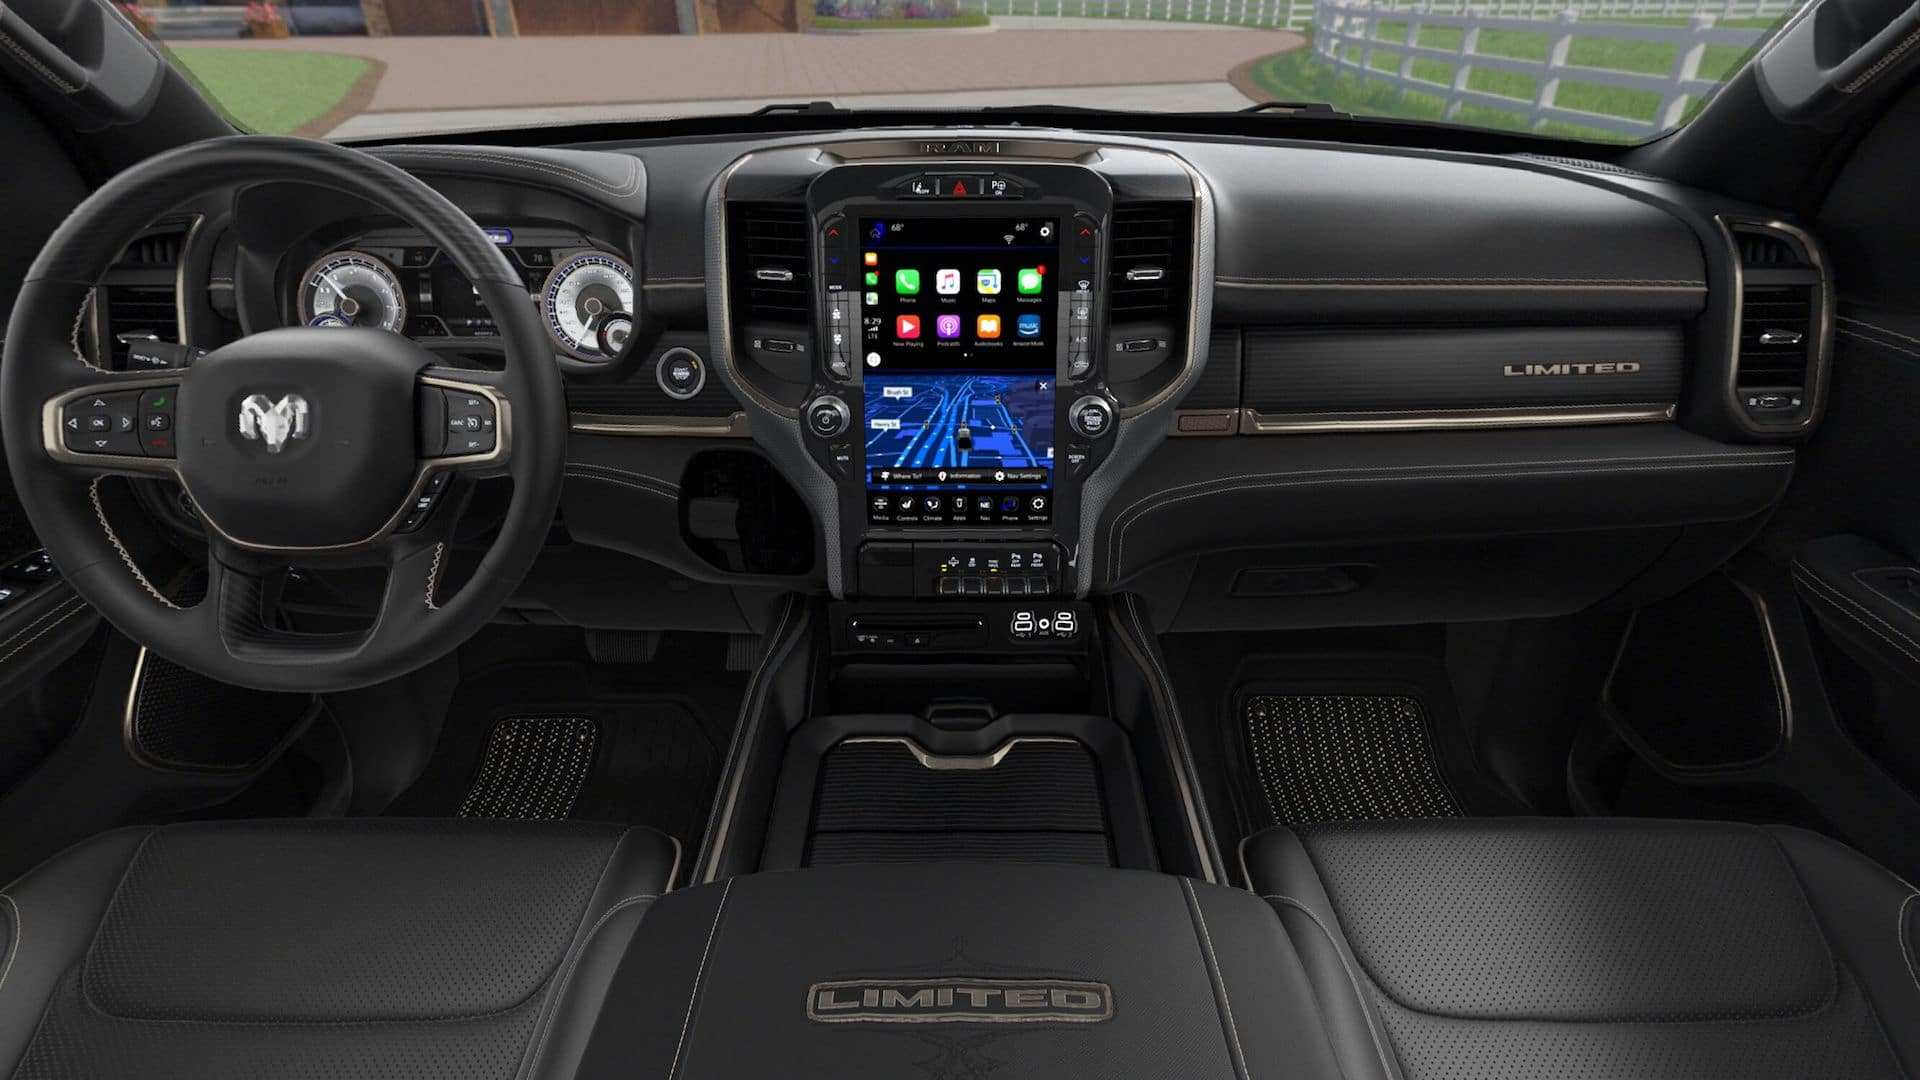 68 All New 2019 Dodge Interior Interior by 2019 Dodge Interior